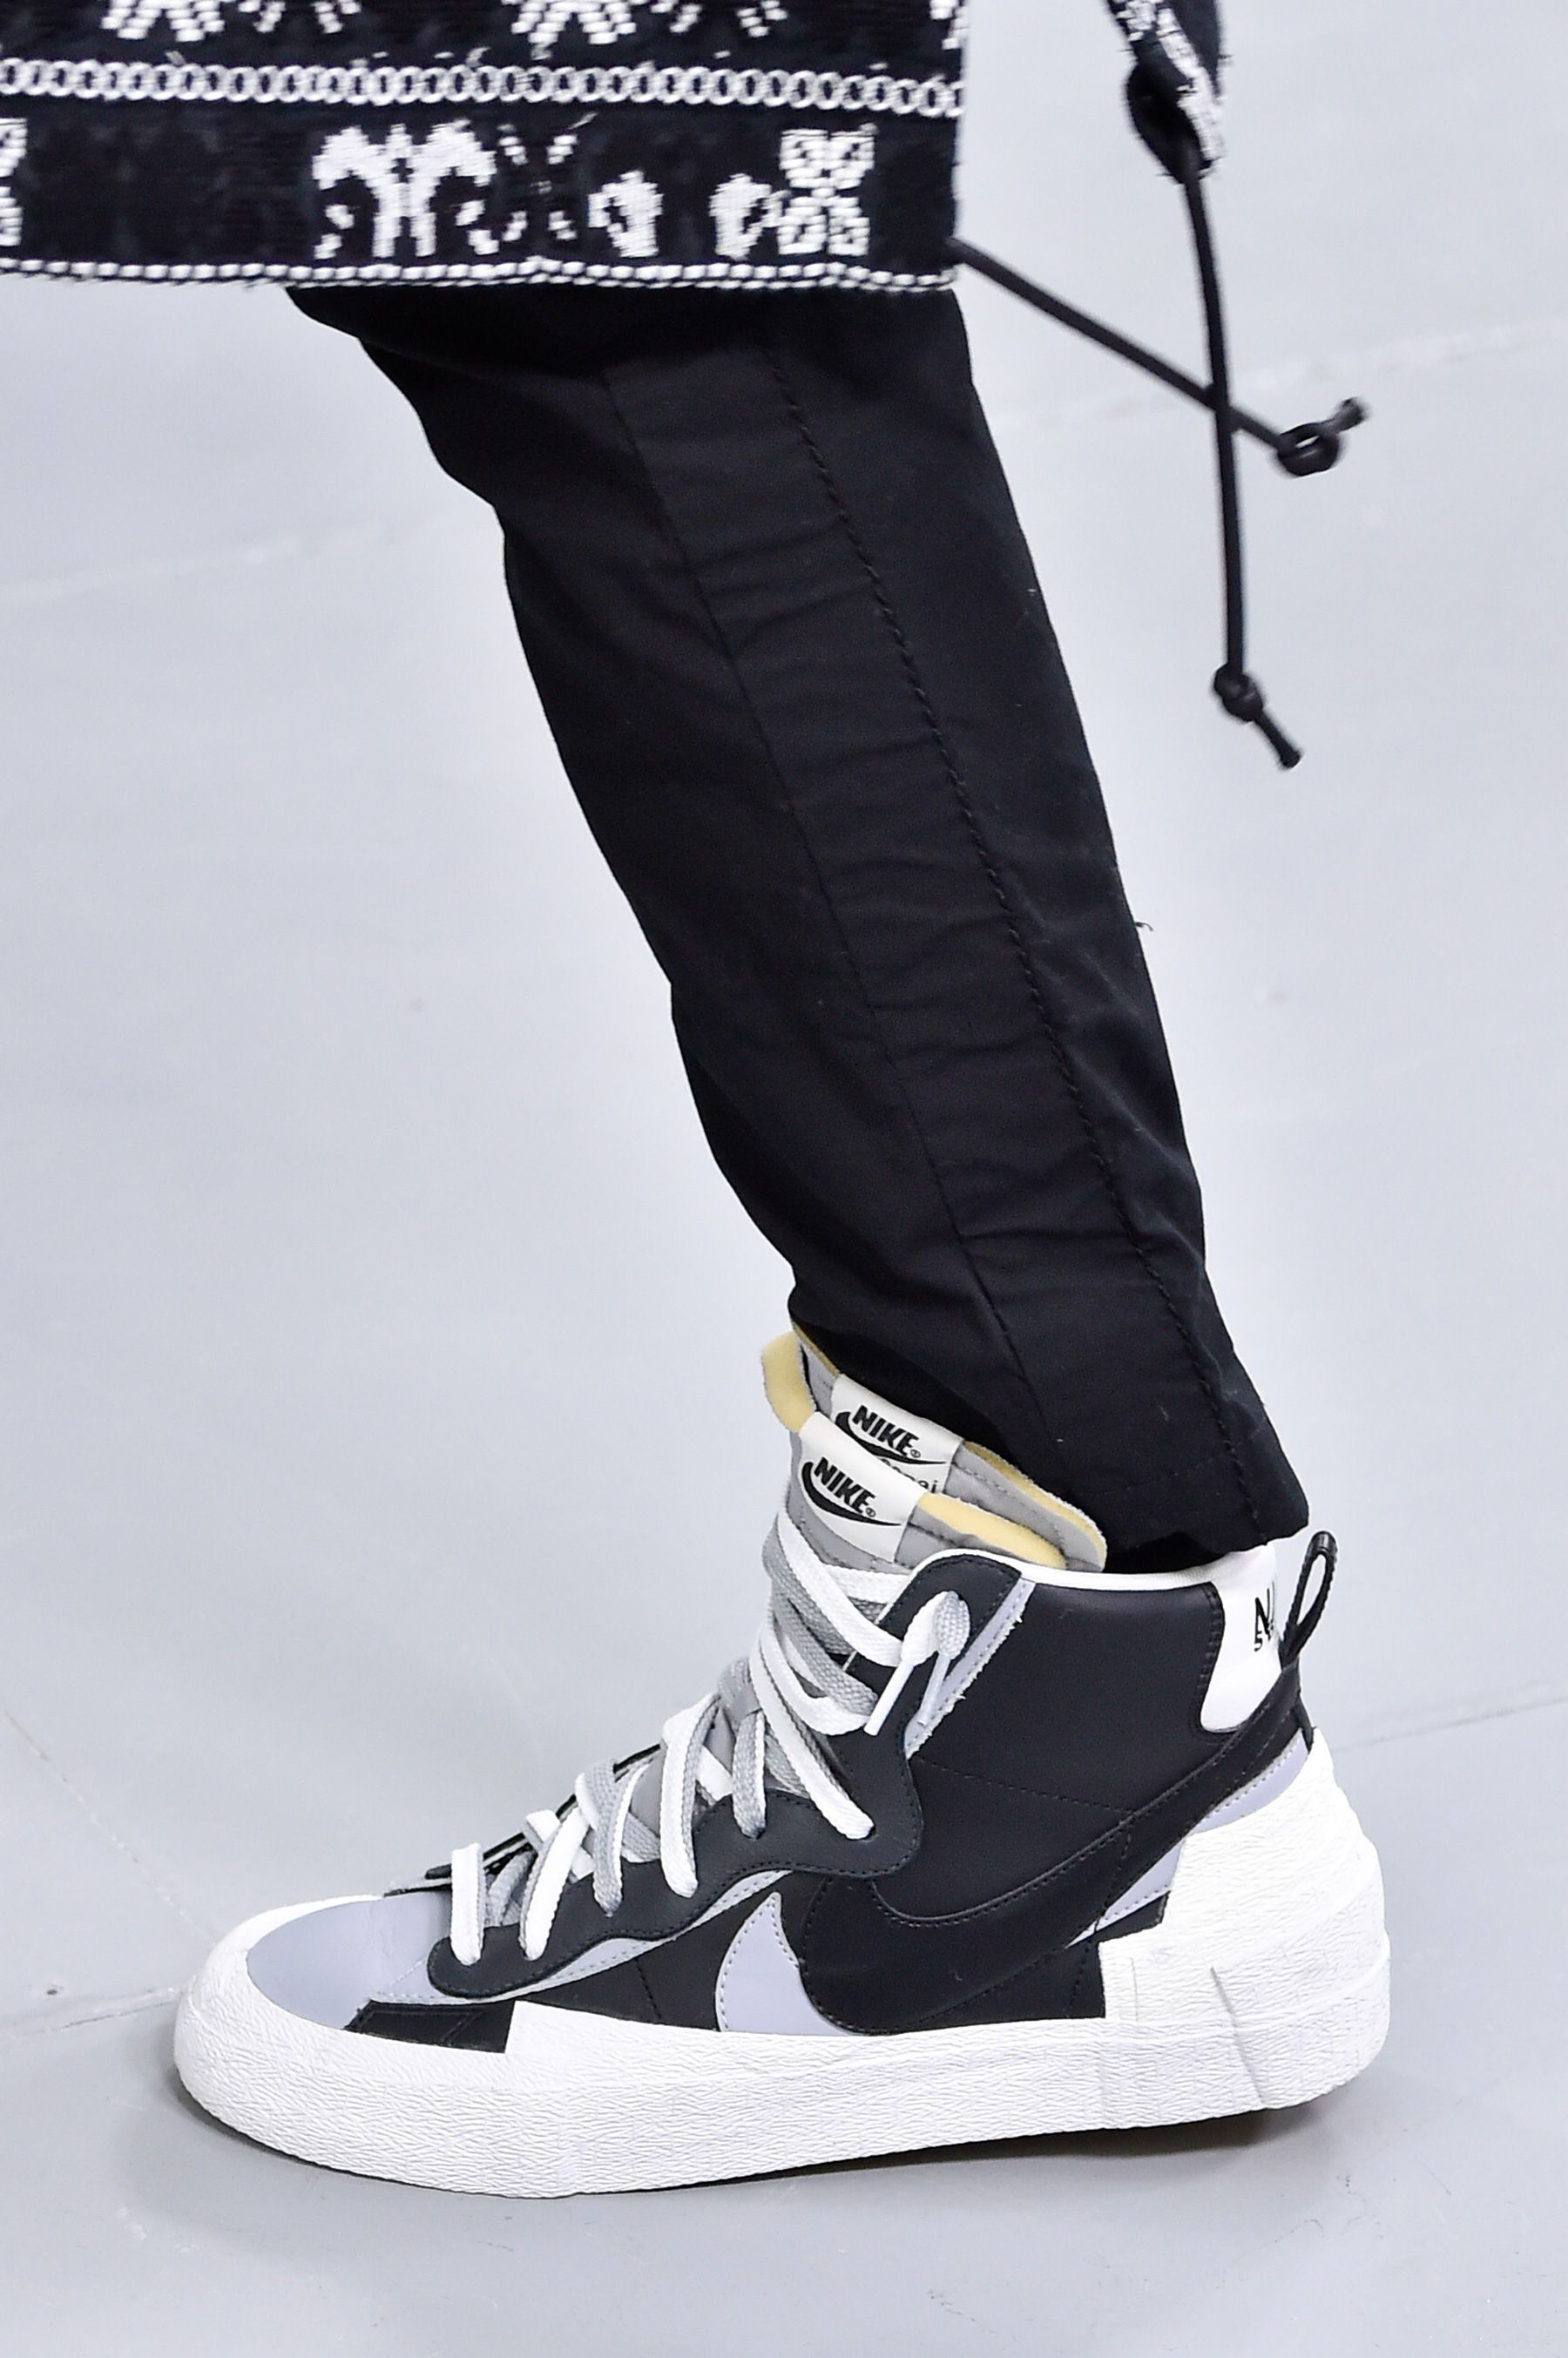 save off 6c439 589cd Nike sacai sneakers photos. Nike sacai sneakers photos Chaussure ...